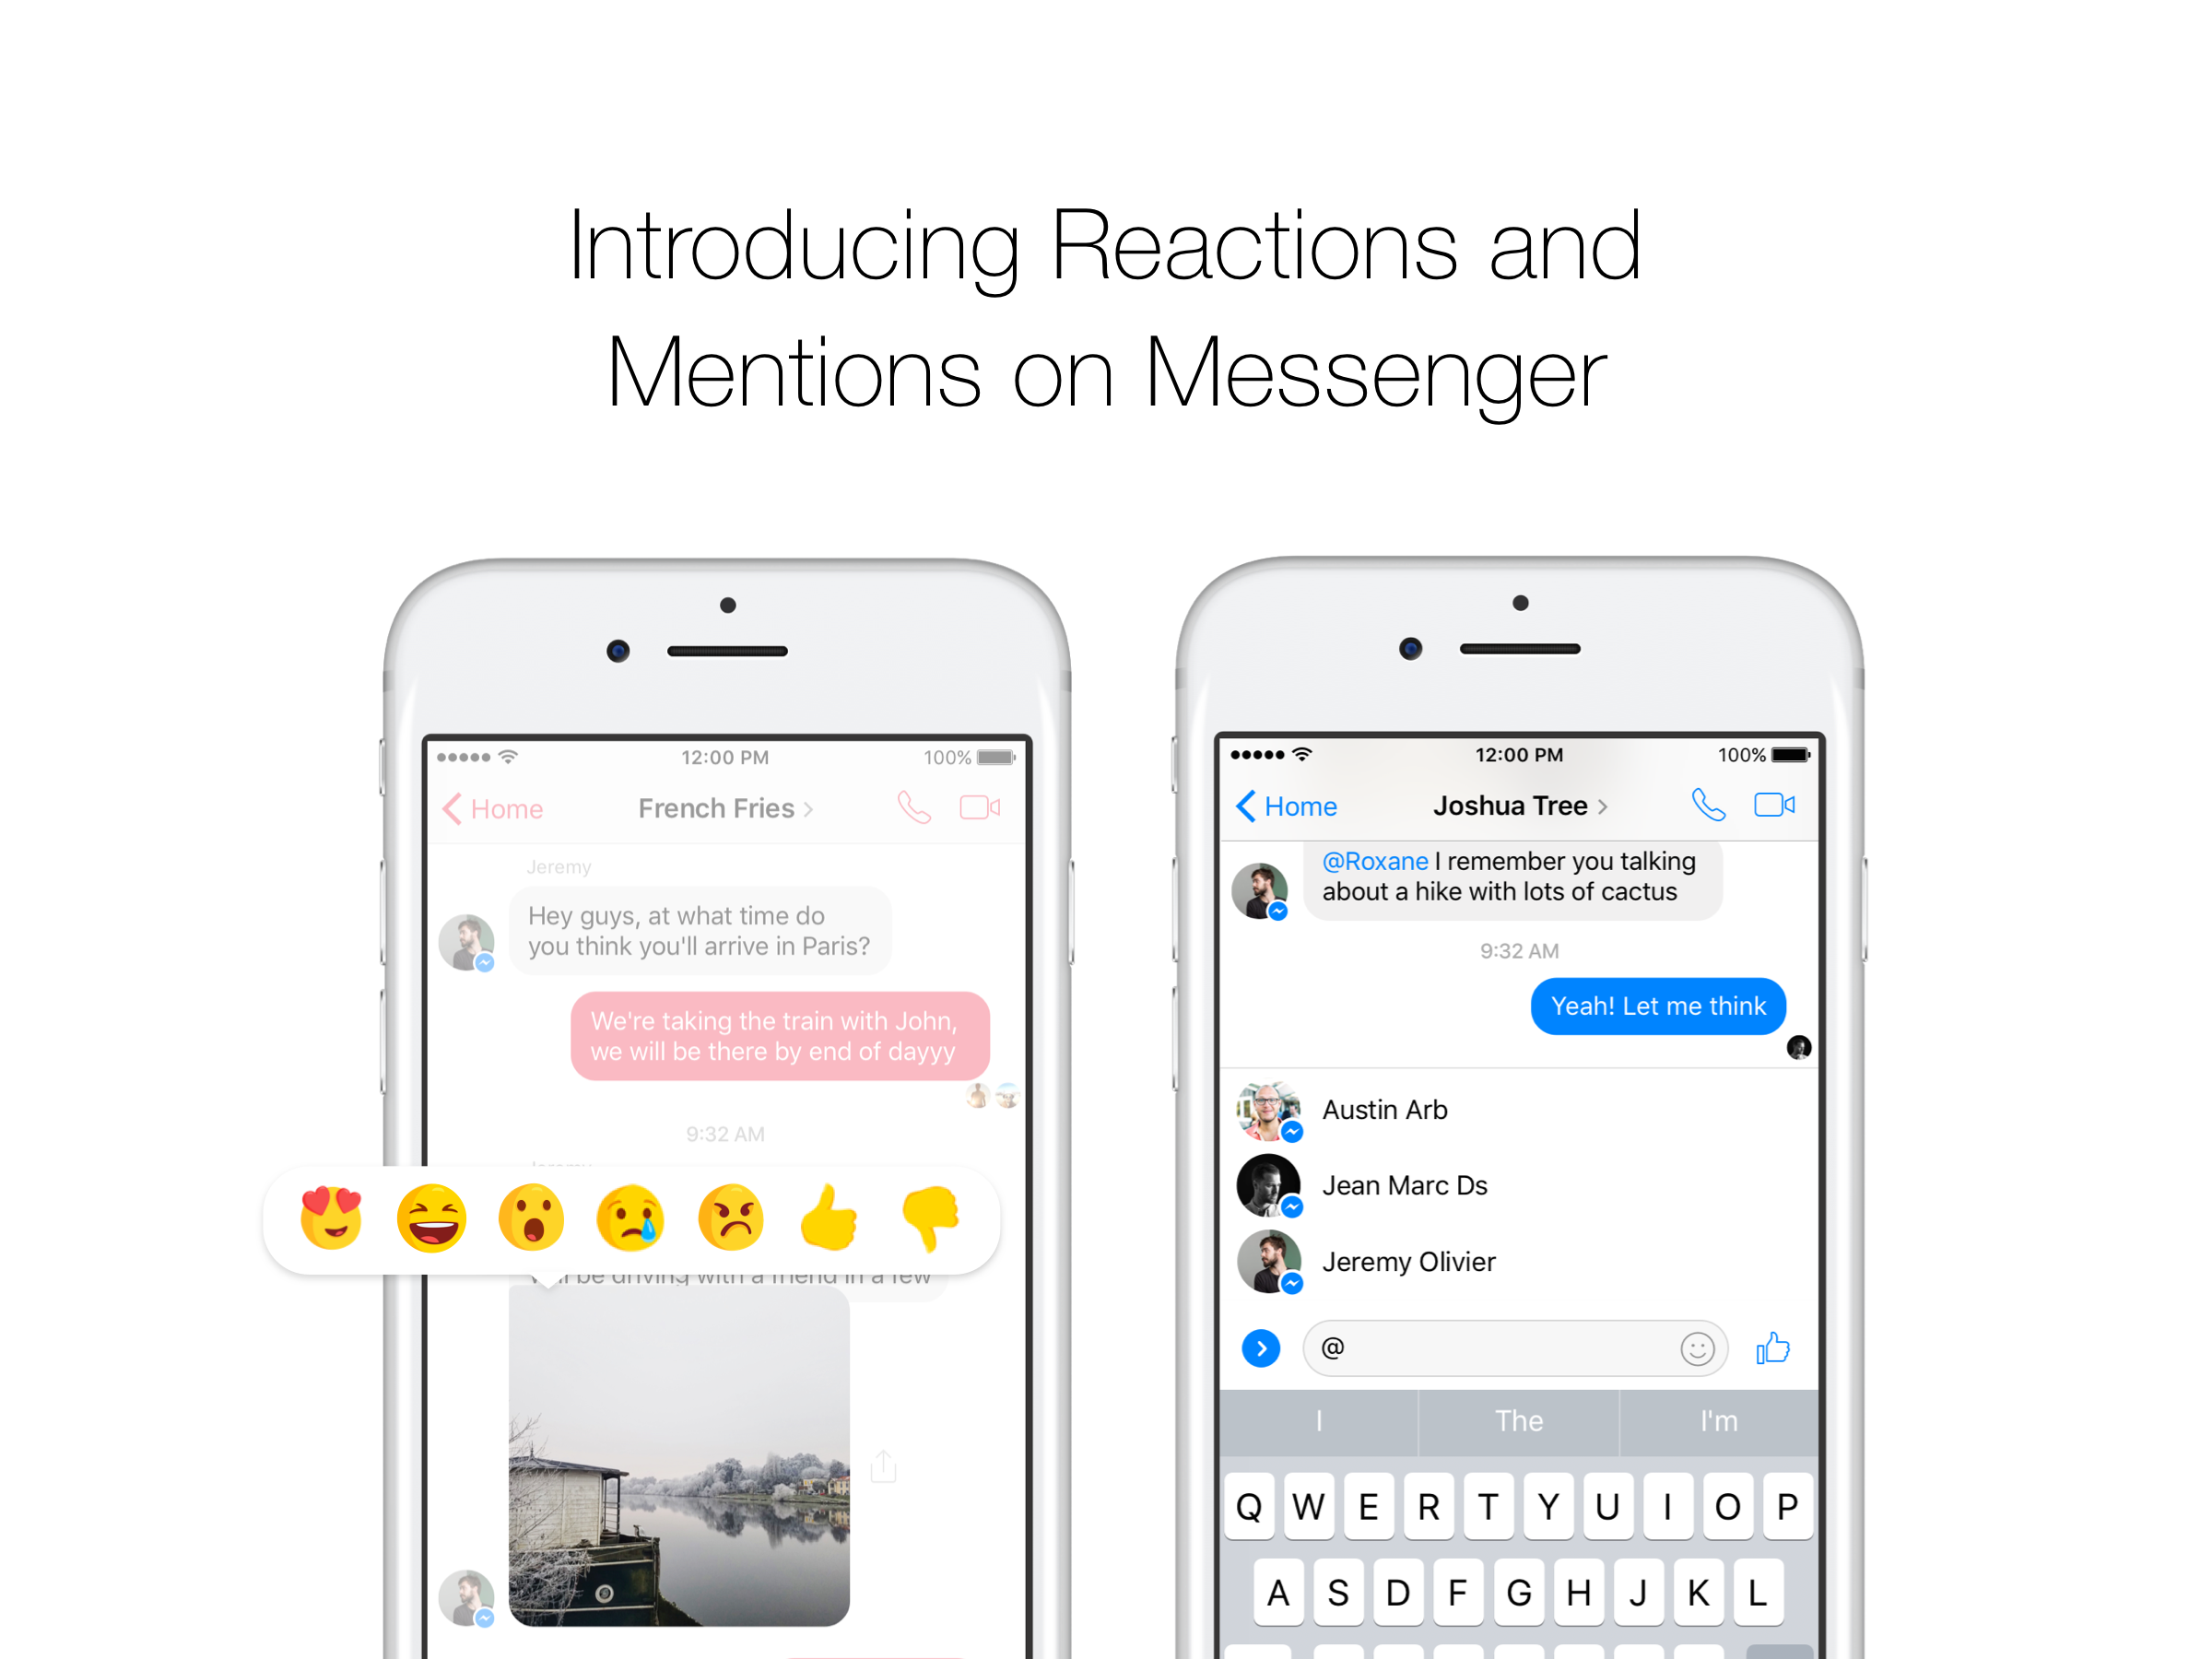 facebook messenger reactii mentiuni